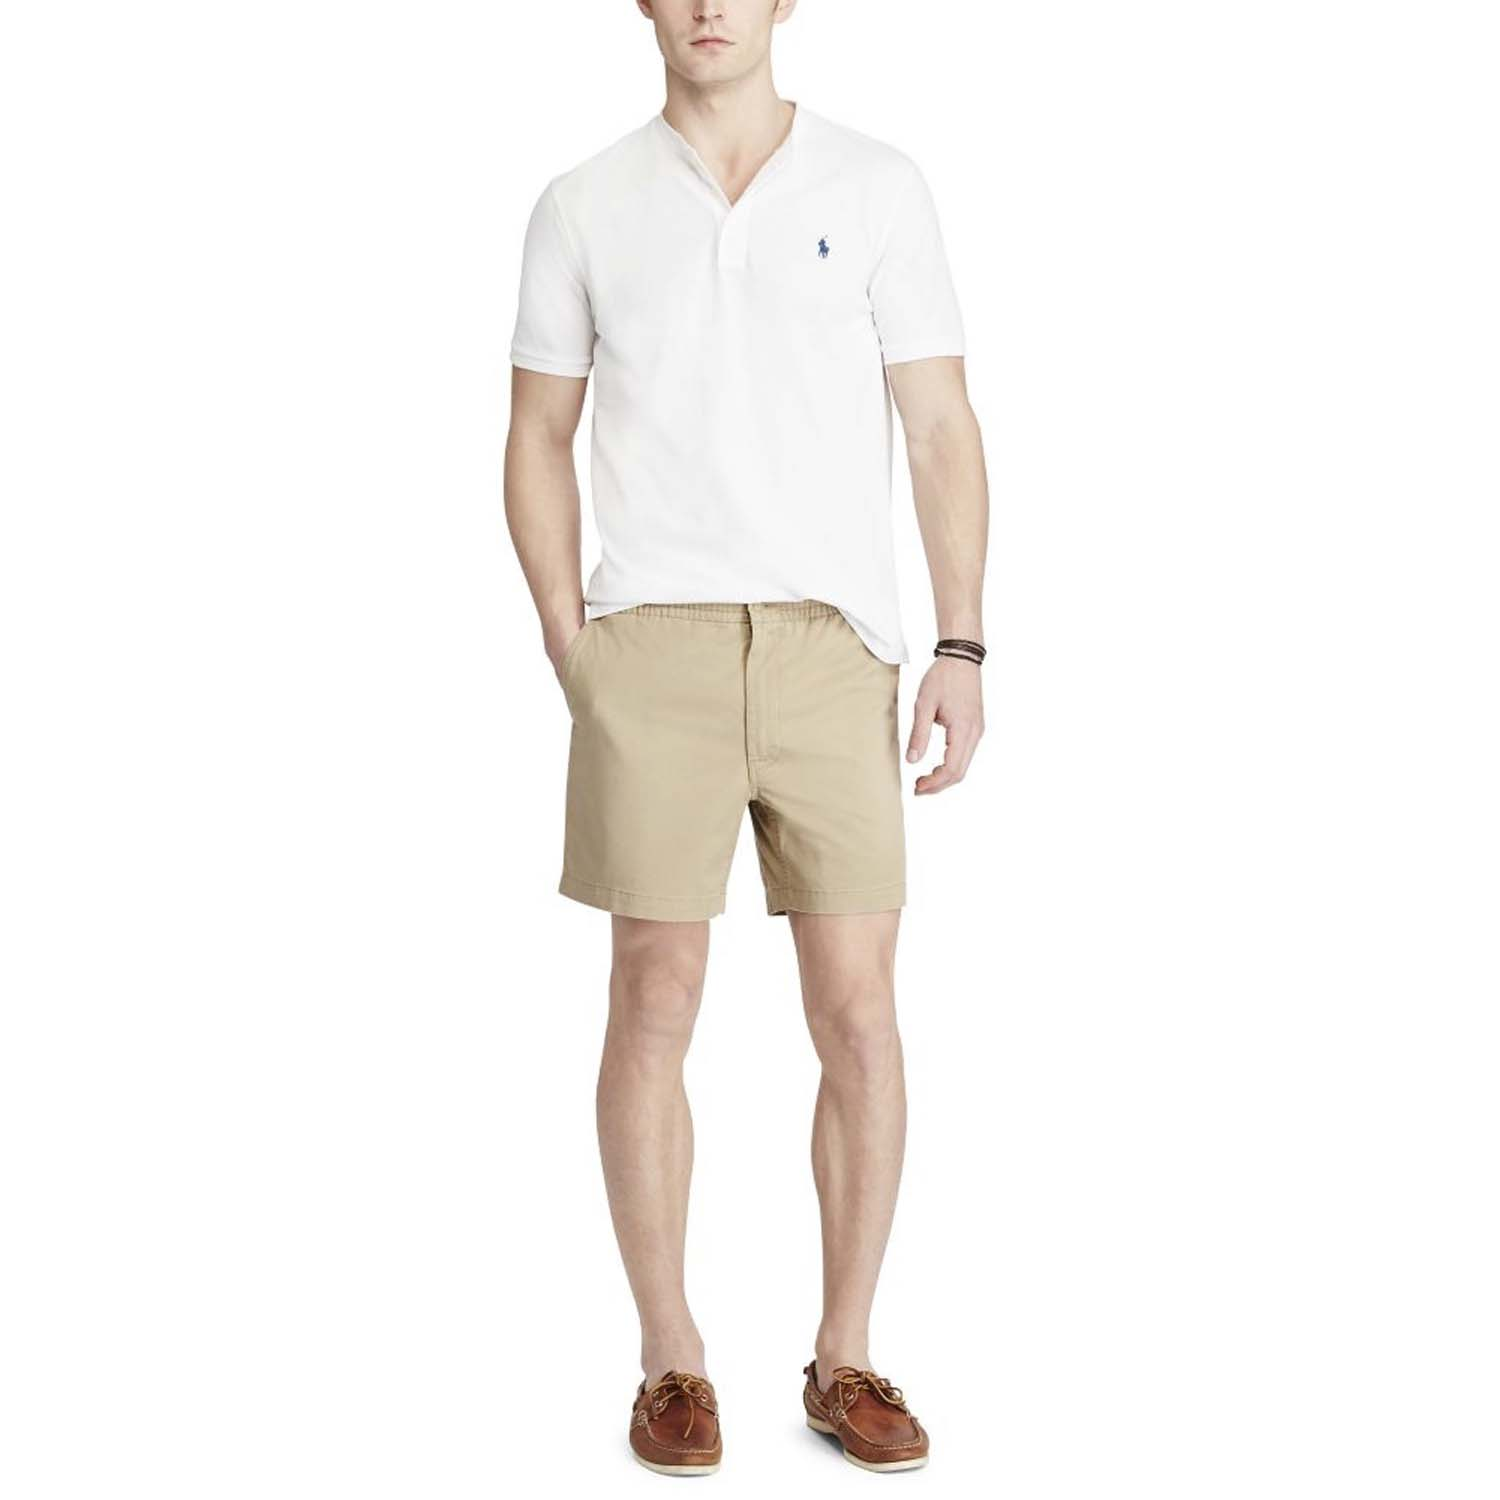 Футболка Polo Ralph Lauren mt7221